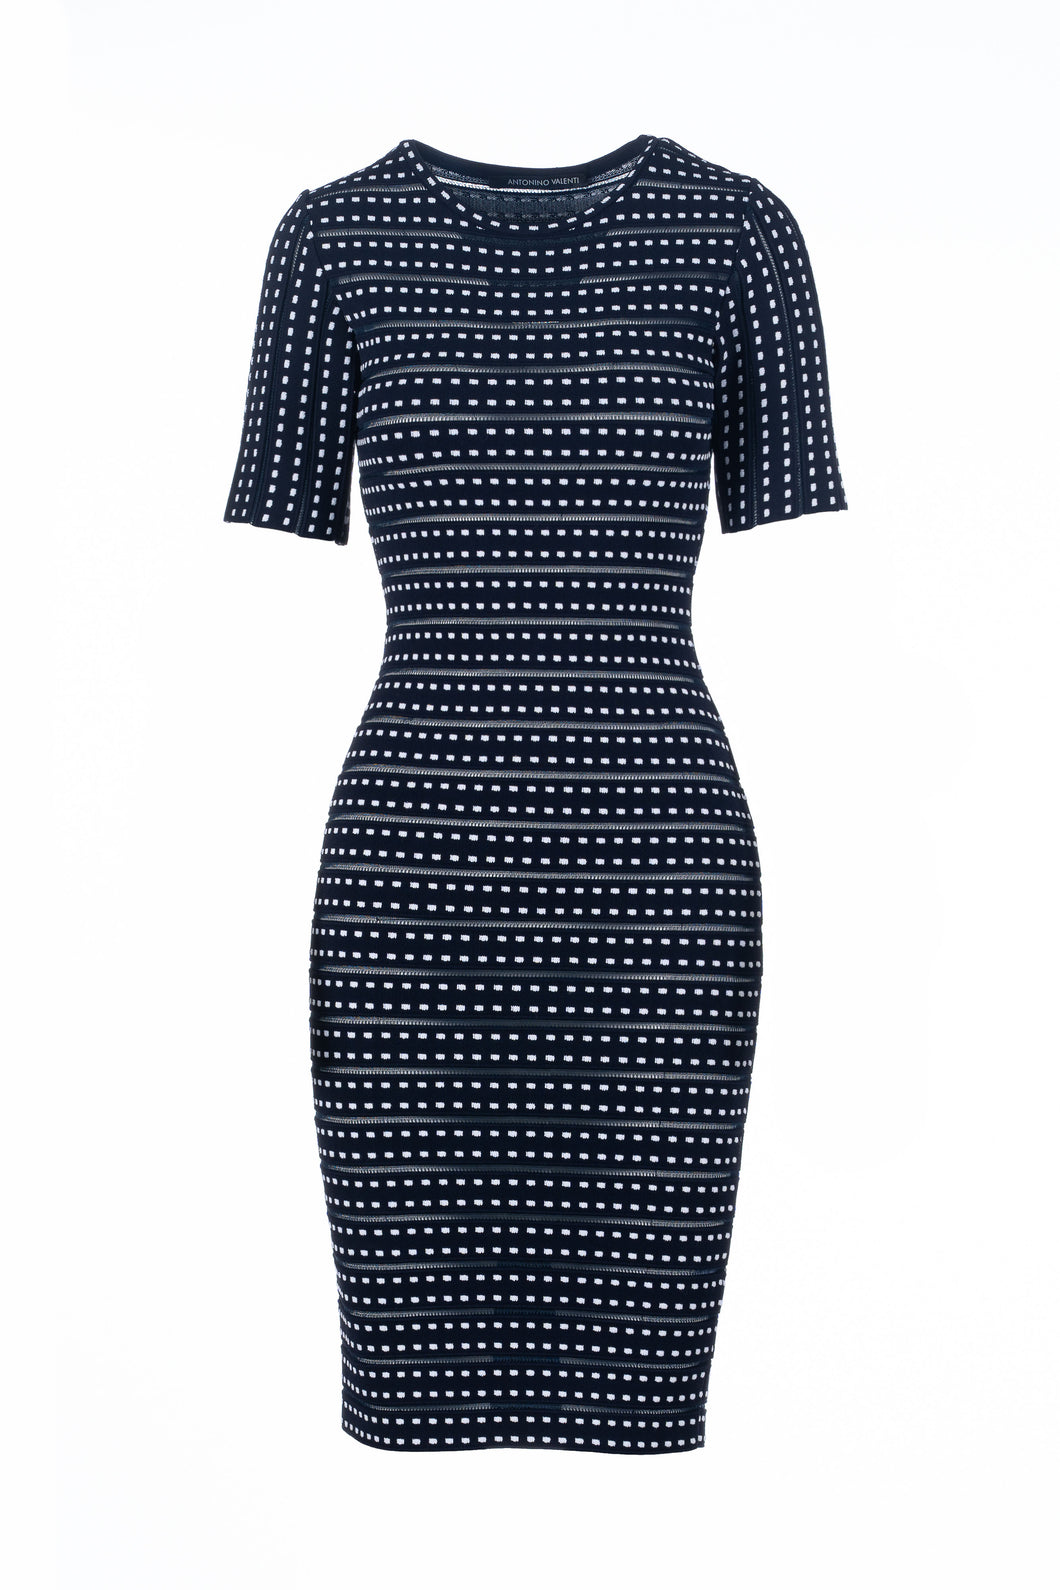 BIA pencil dress blu/bianco